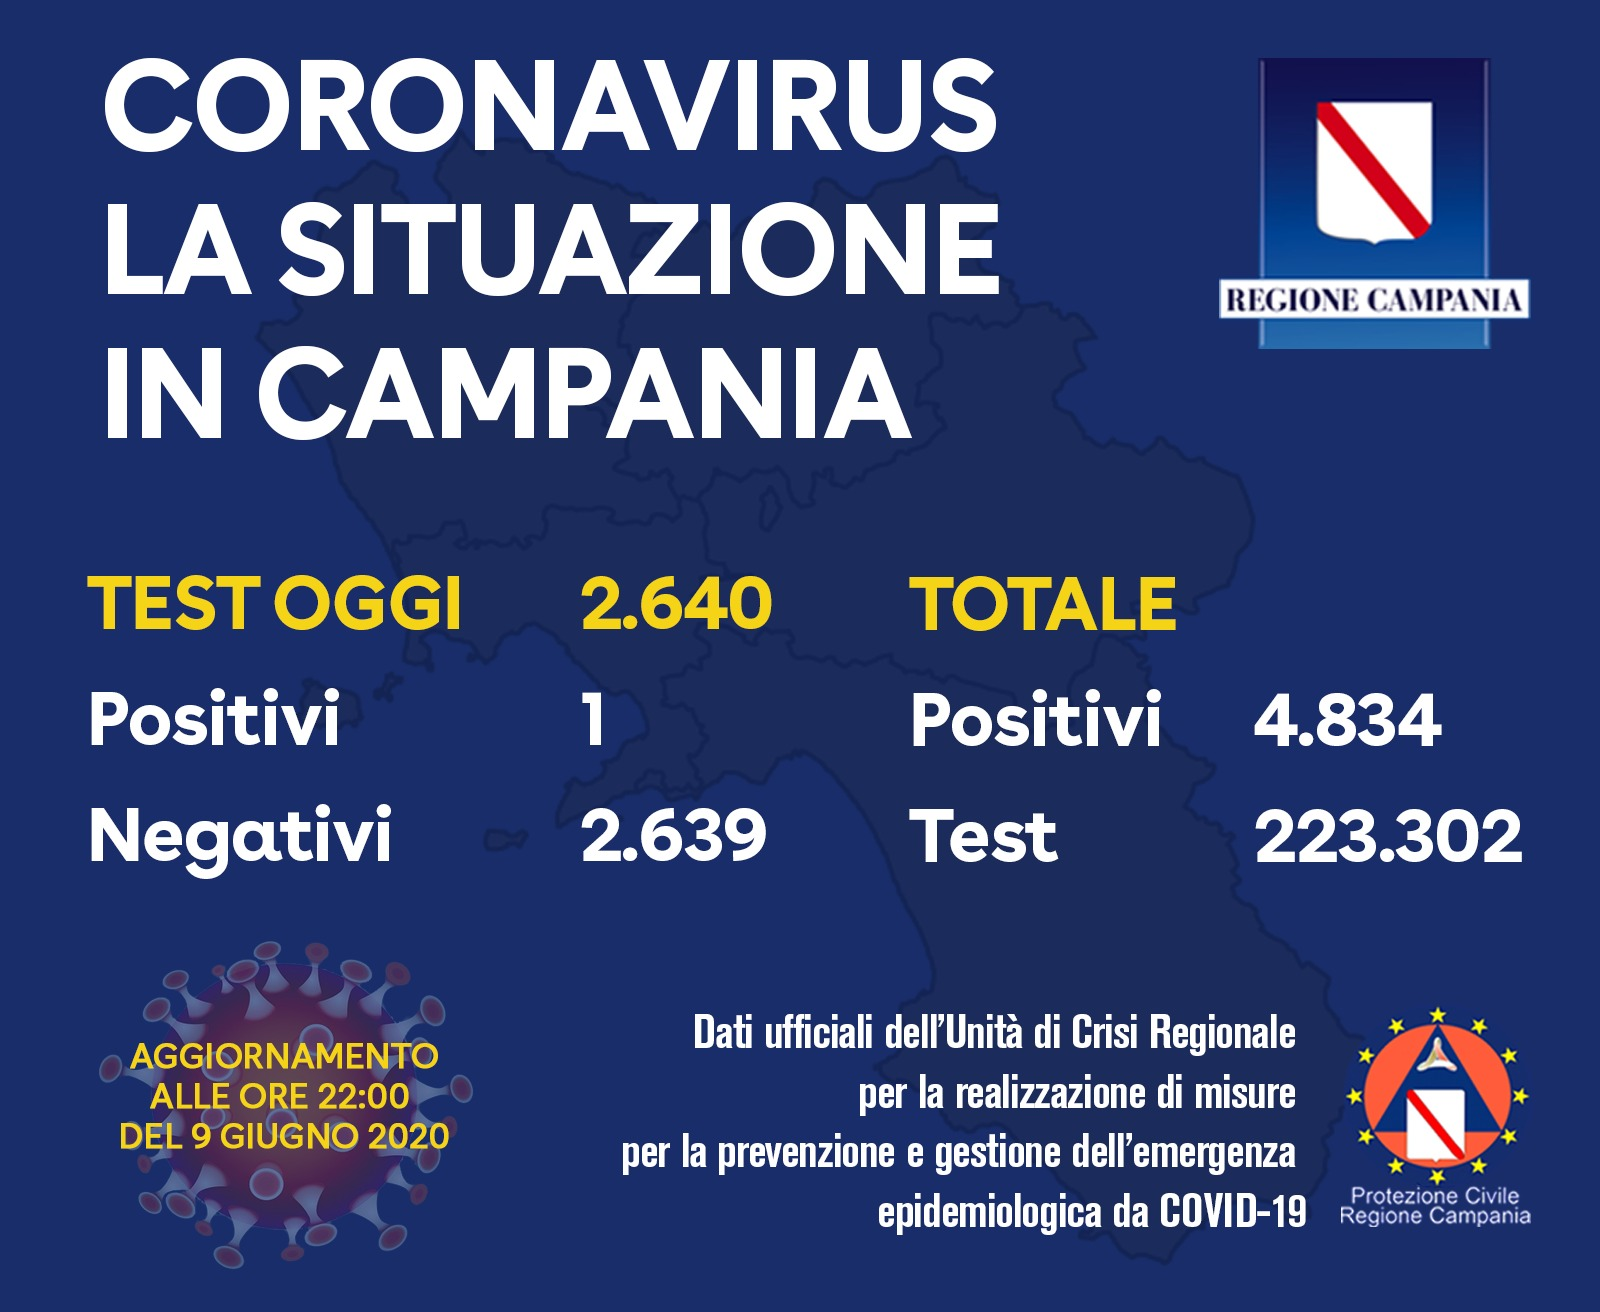 Photo of Coronavirus in Campania, 1 tampone positivo su 2.640: il bollettino del 9 giugno